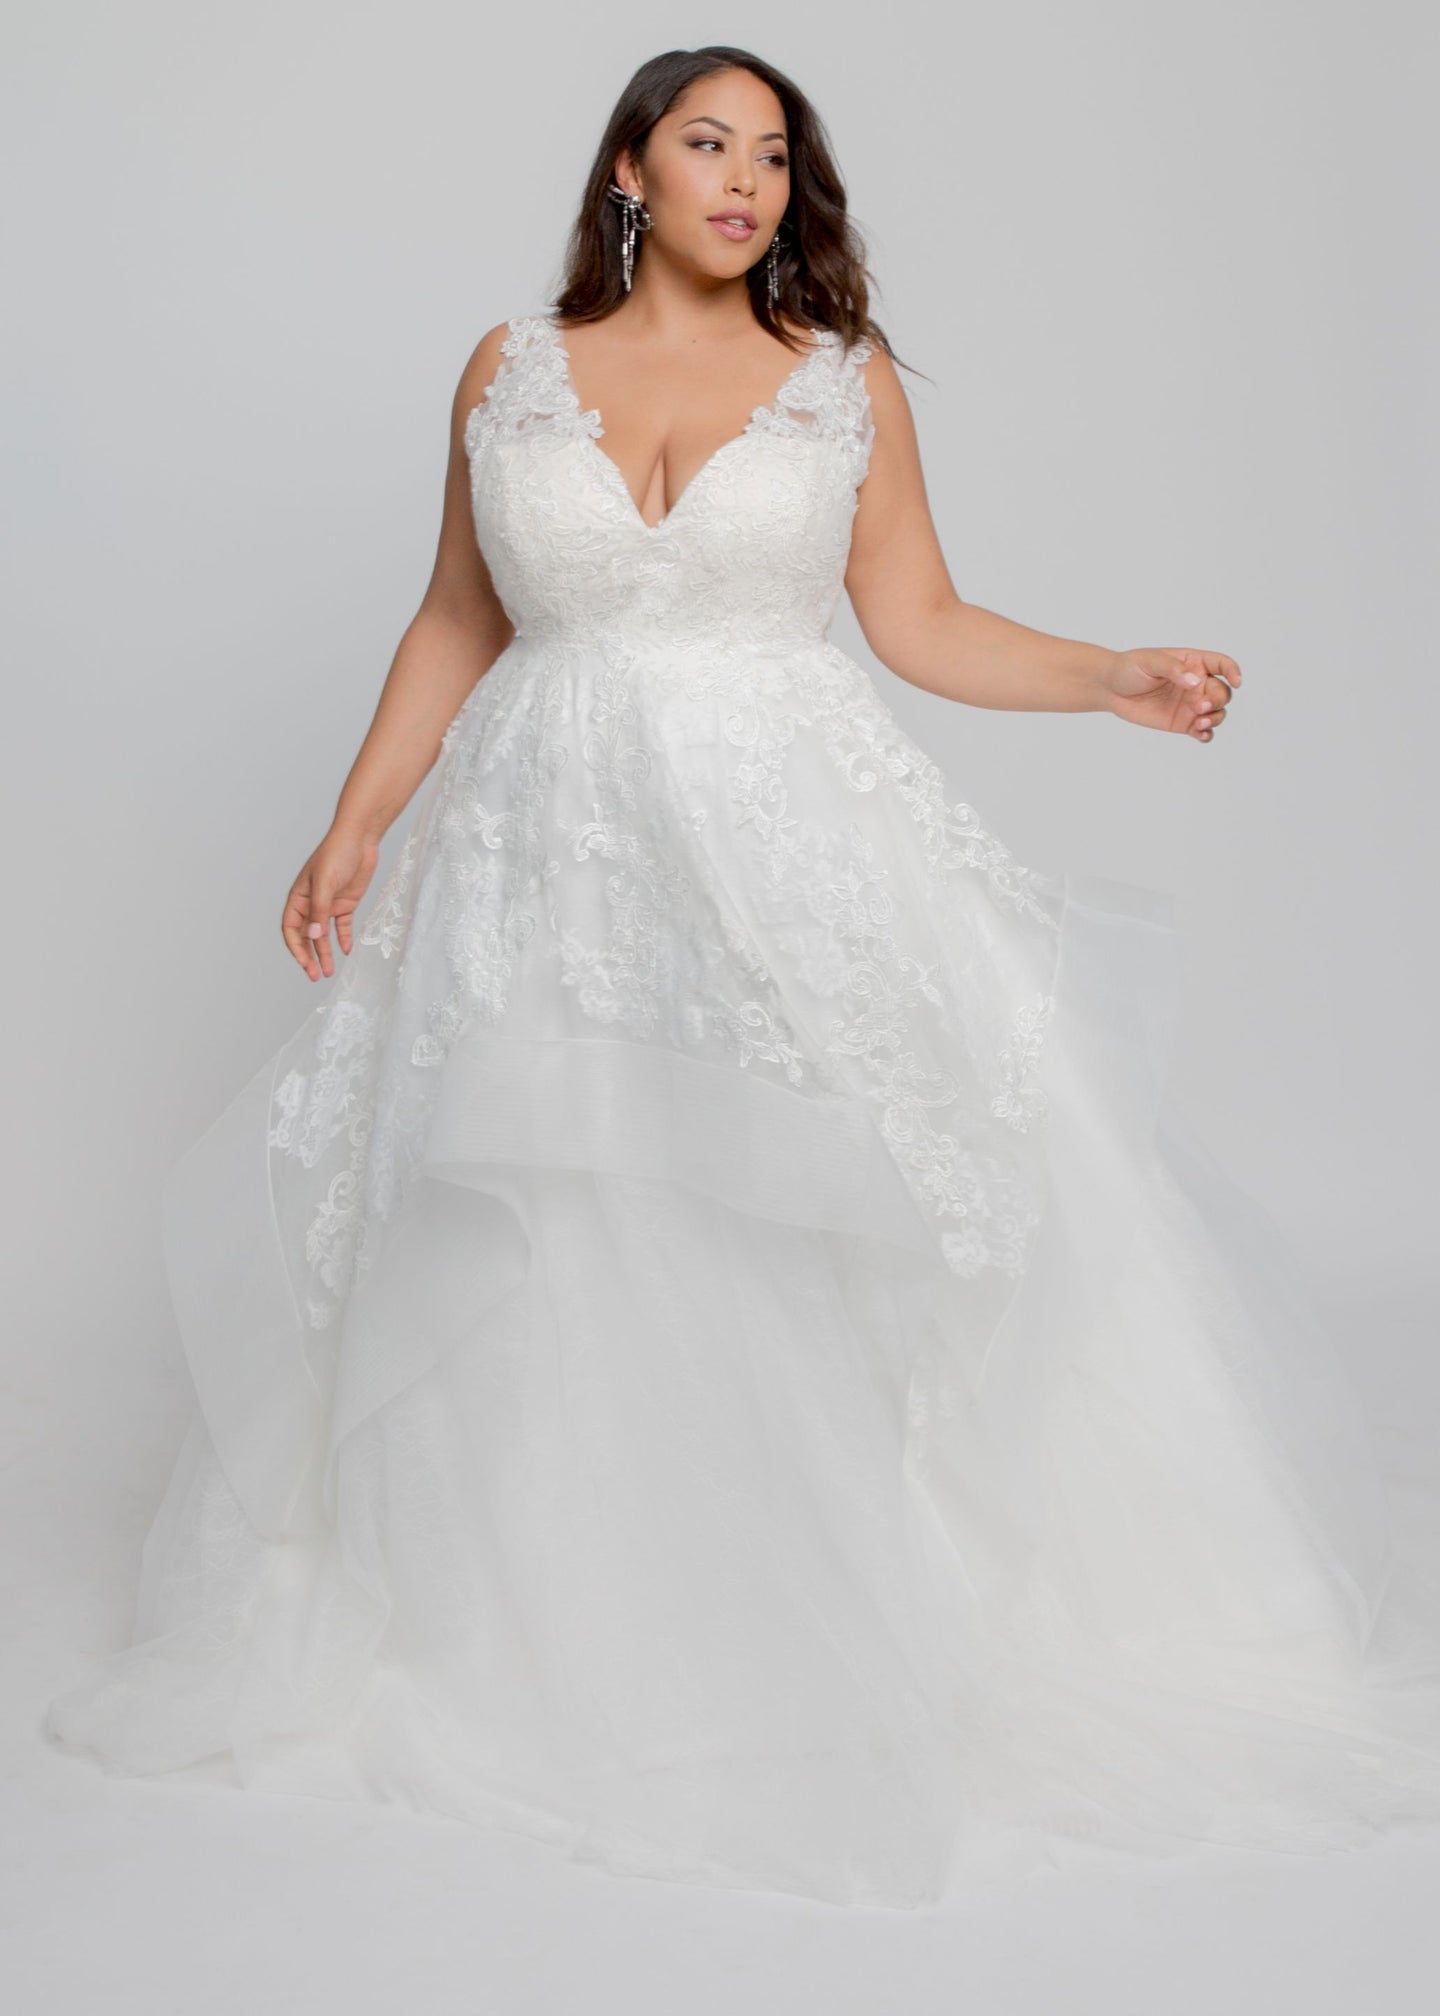 Gorgeous bridal gowns for all body shapes: plus size, curvy, or petite brides. Try on our wedding dresses at home. Size 0-30. Comfortable. Convenient. Fun. Lace or satin. Mermaid or A-line.  Fulfill your lace dreams with this gown featuring a stunning lace-lined V neckline and layered lace and tulle skirt. Applique details are delicately placed from the tulle sleeves to the horsehair hems on this skirt.